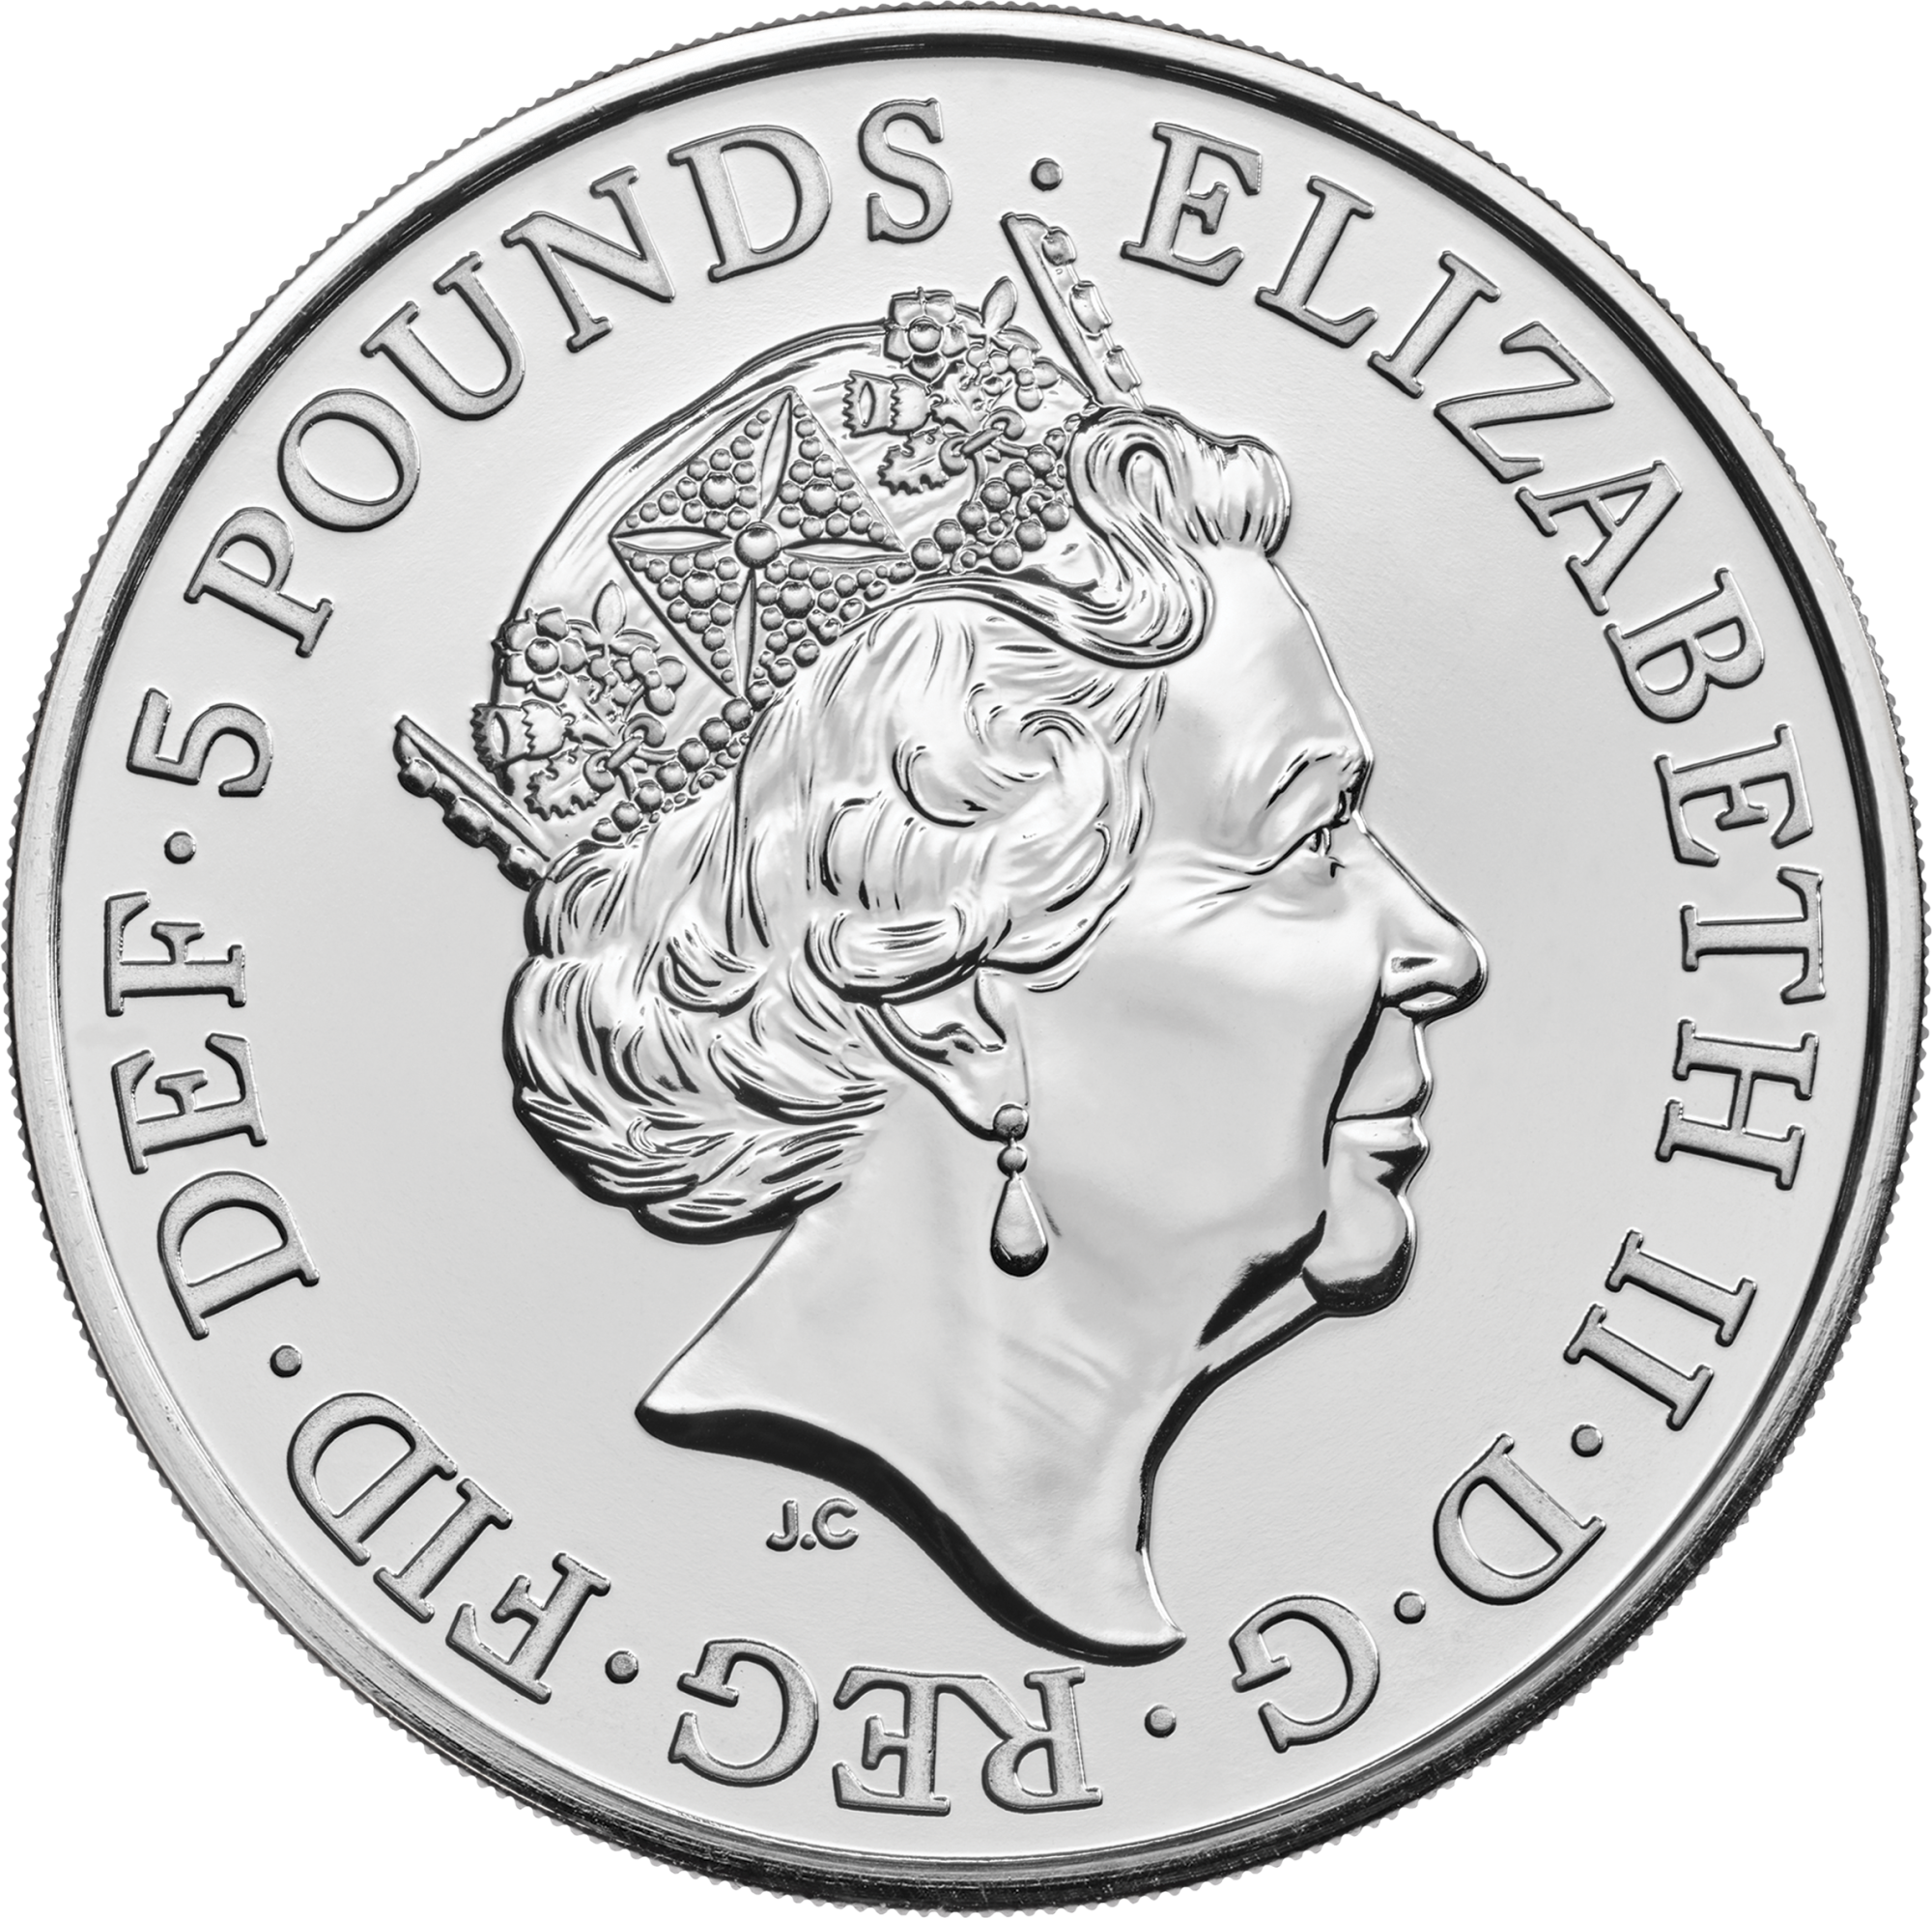 Celebrating the Royal Wedding - HRH Prince Harry & Ms. Meghan Markle 2018 UK £5 Brilliant Uncirculated Coin obv